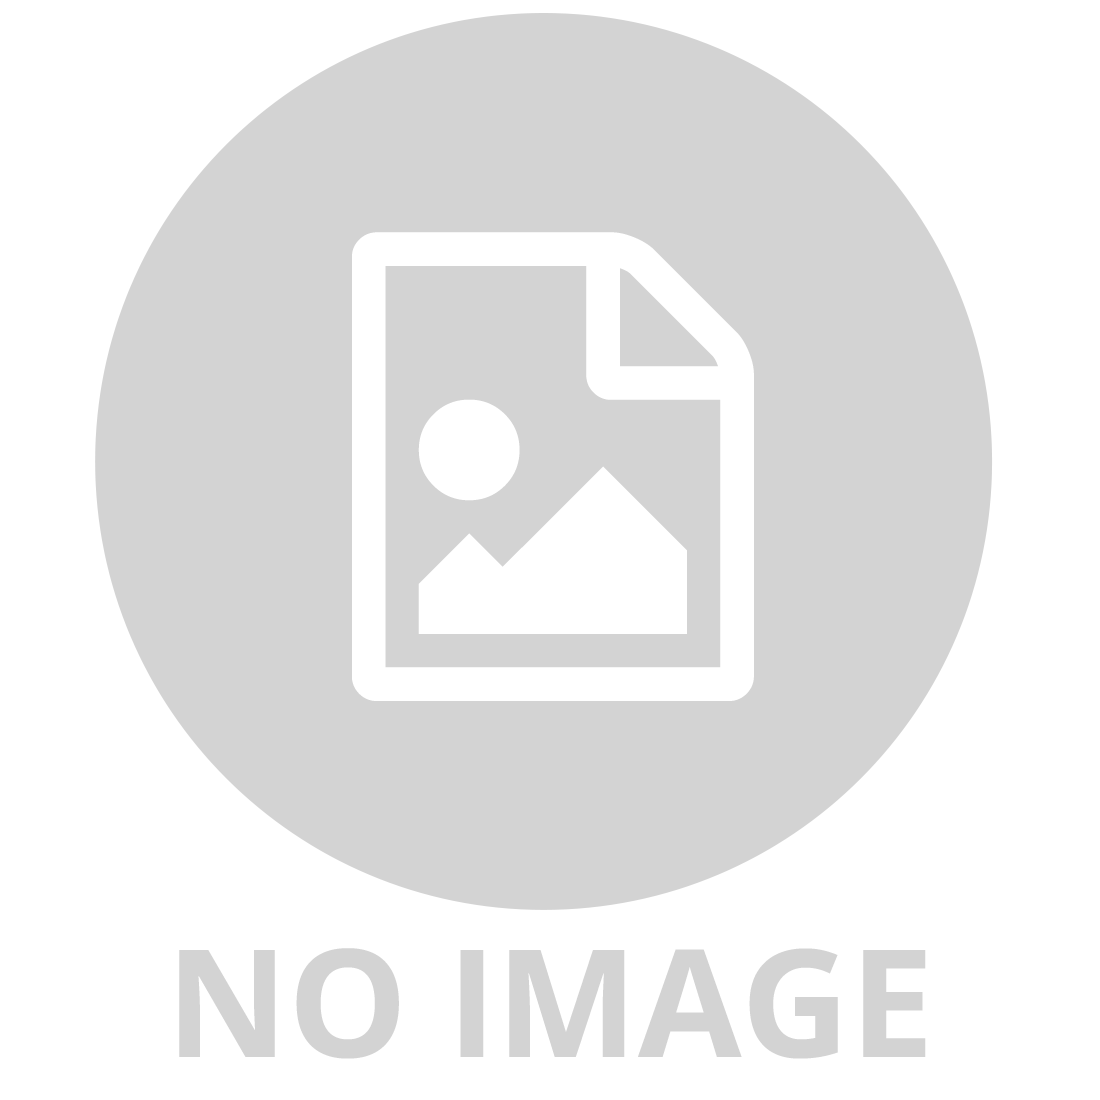 MARVINS iMAGIC INTERACTIVE MAGIC SET